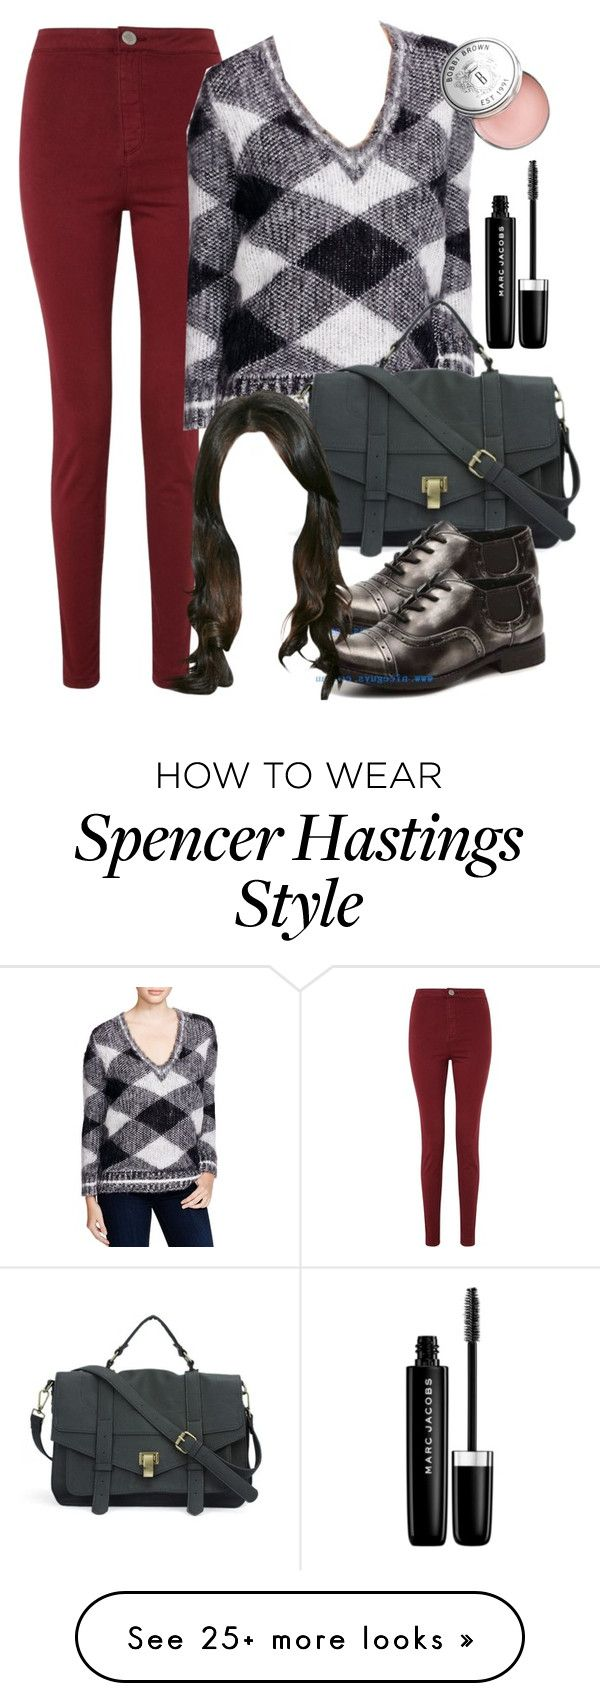 Spencer hastings summer style